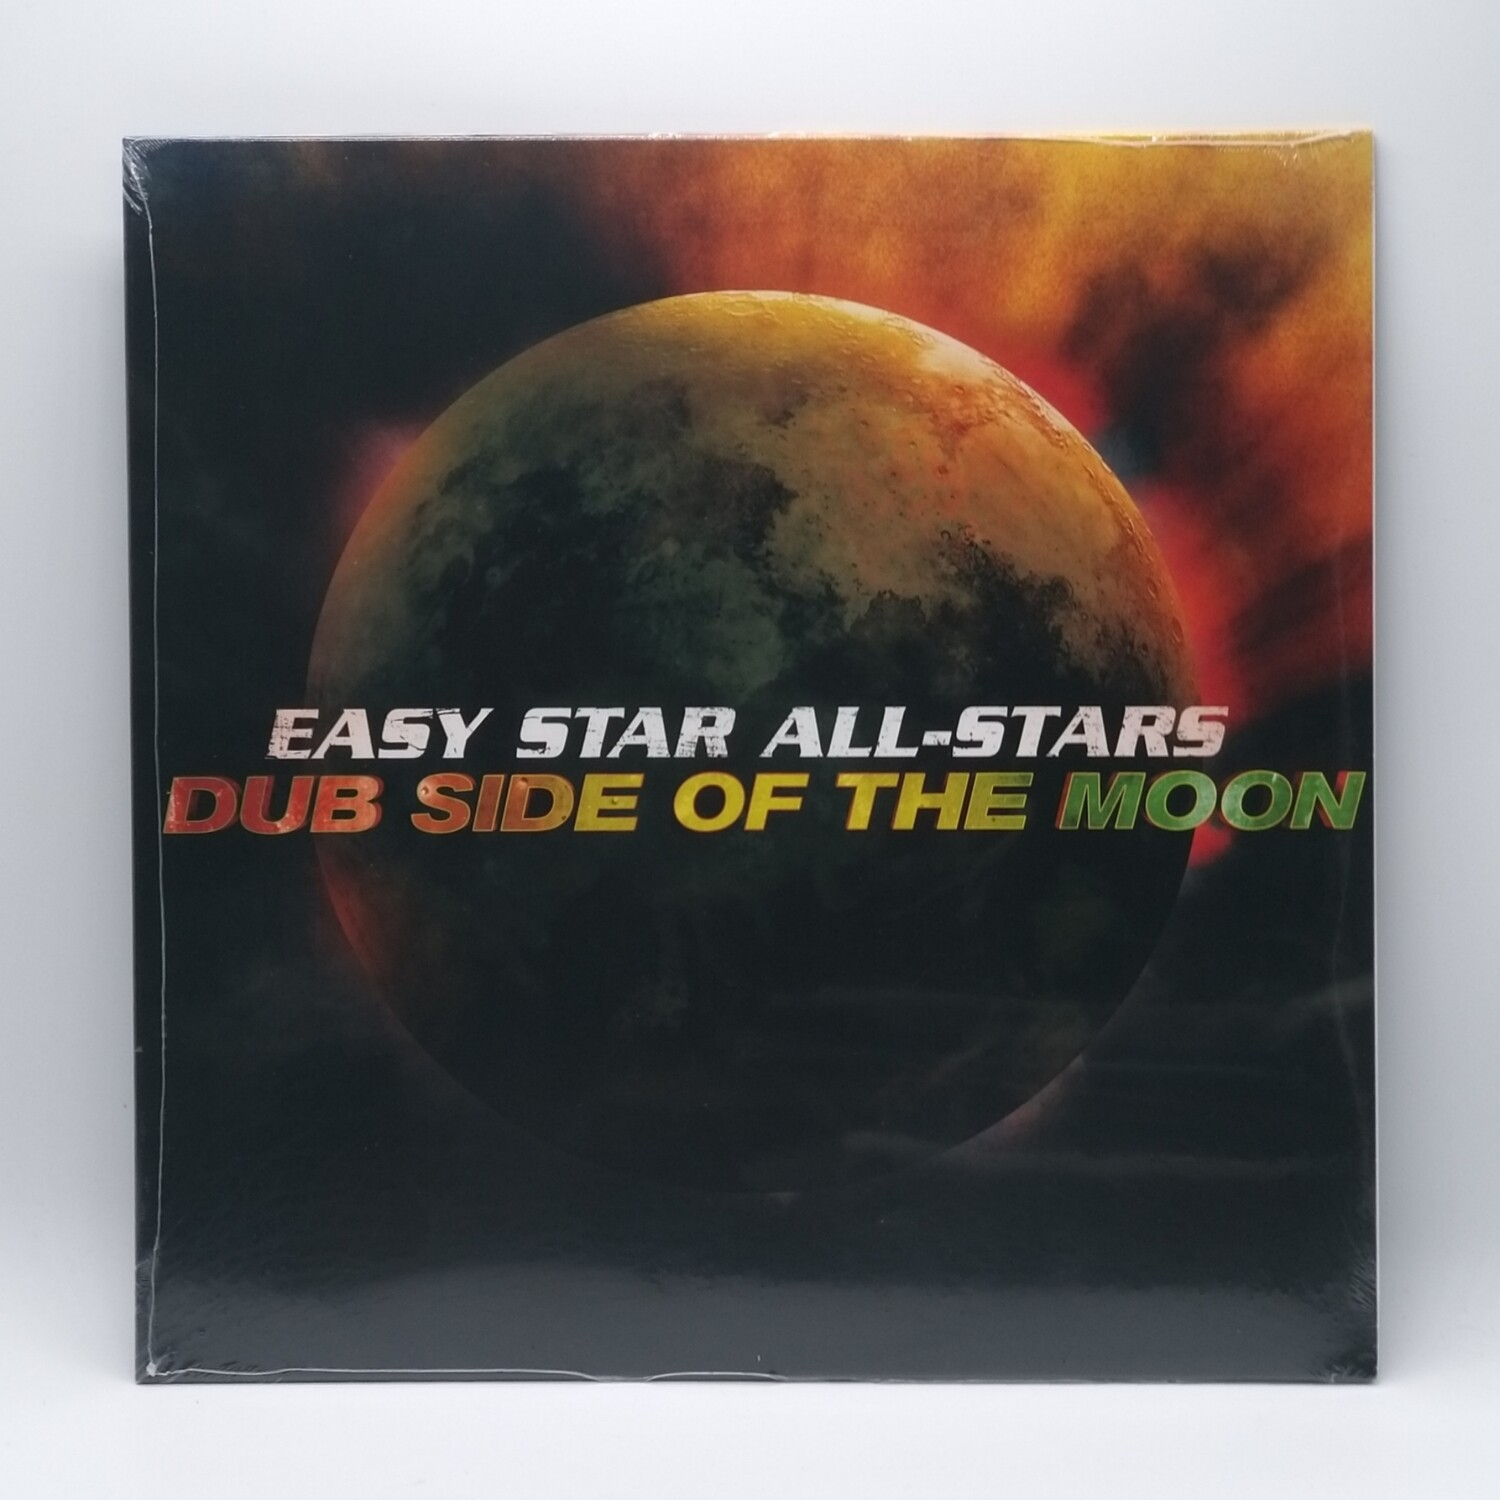 EASY STAR ALL-STARS -DUB SIDE OF THE MOON- LP